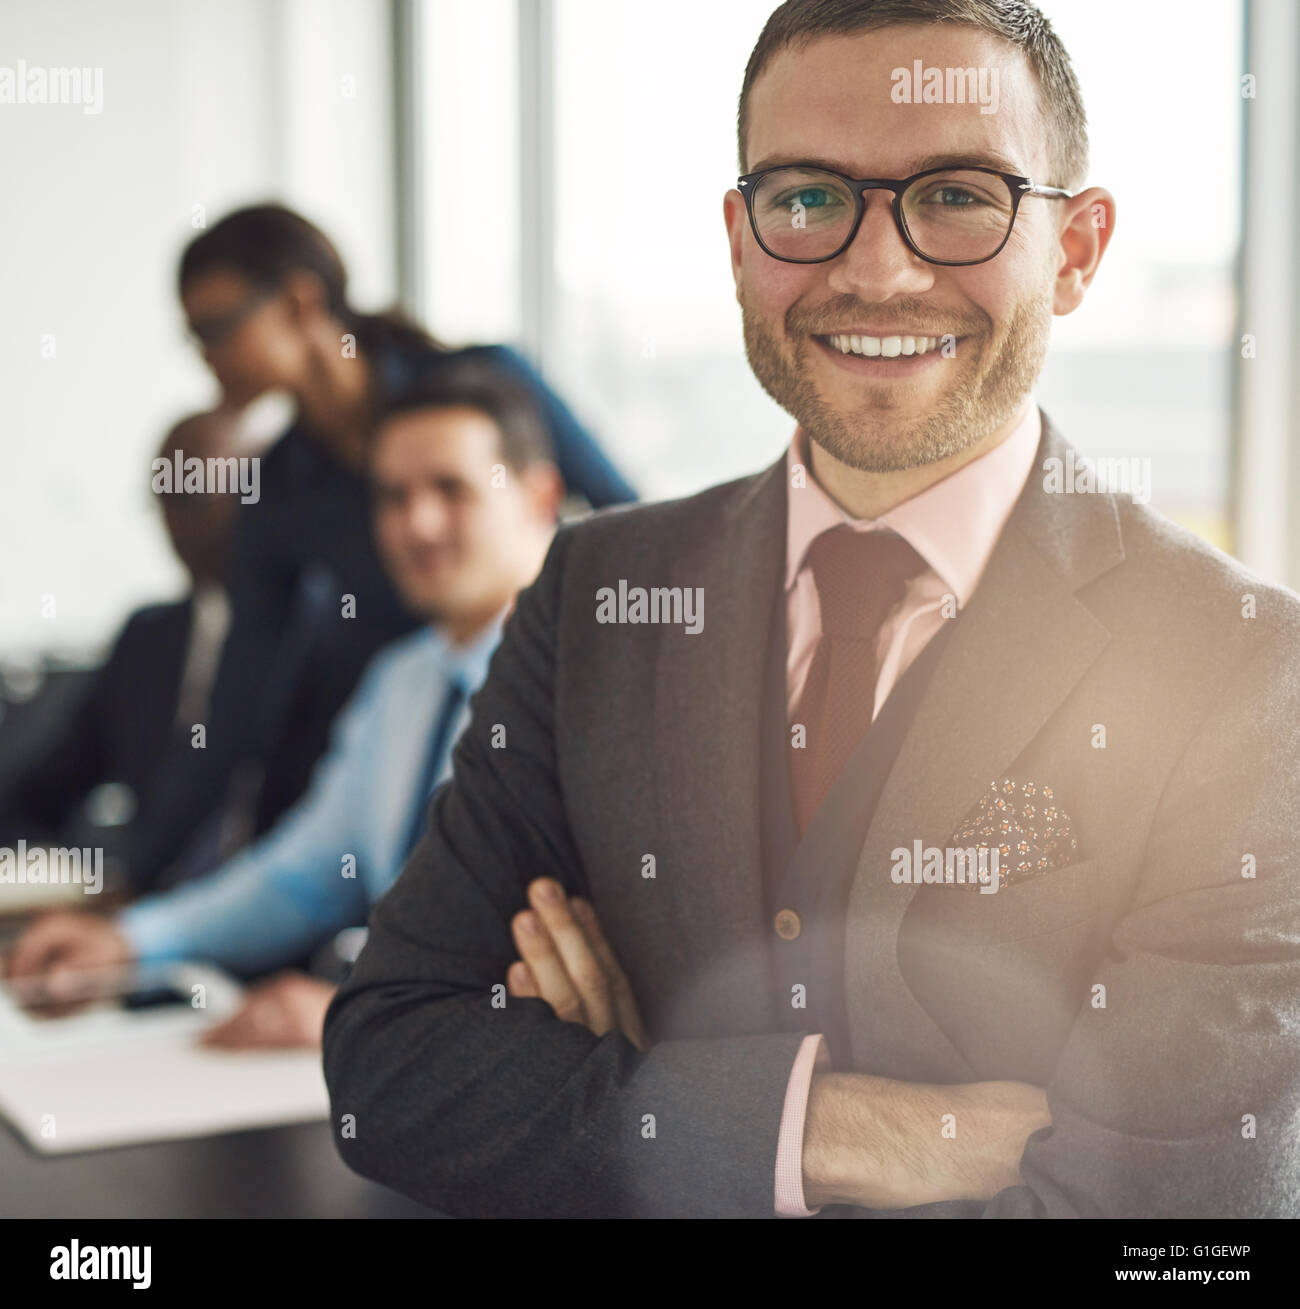 Smiling confident businessman wearing glasses standing with folded arms looking at the camera, close up view with - Stock Image